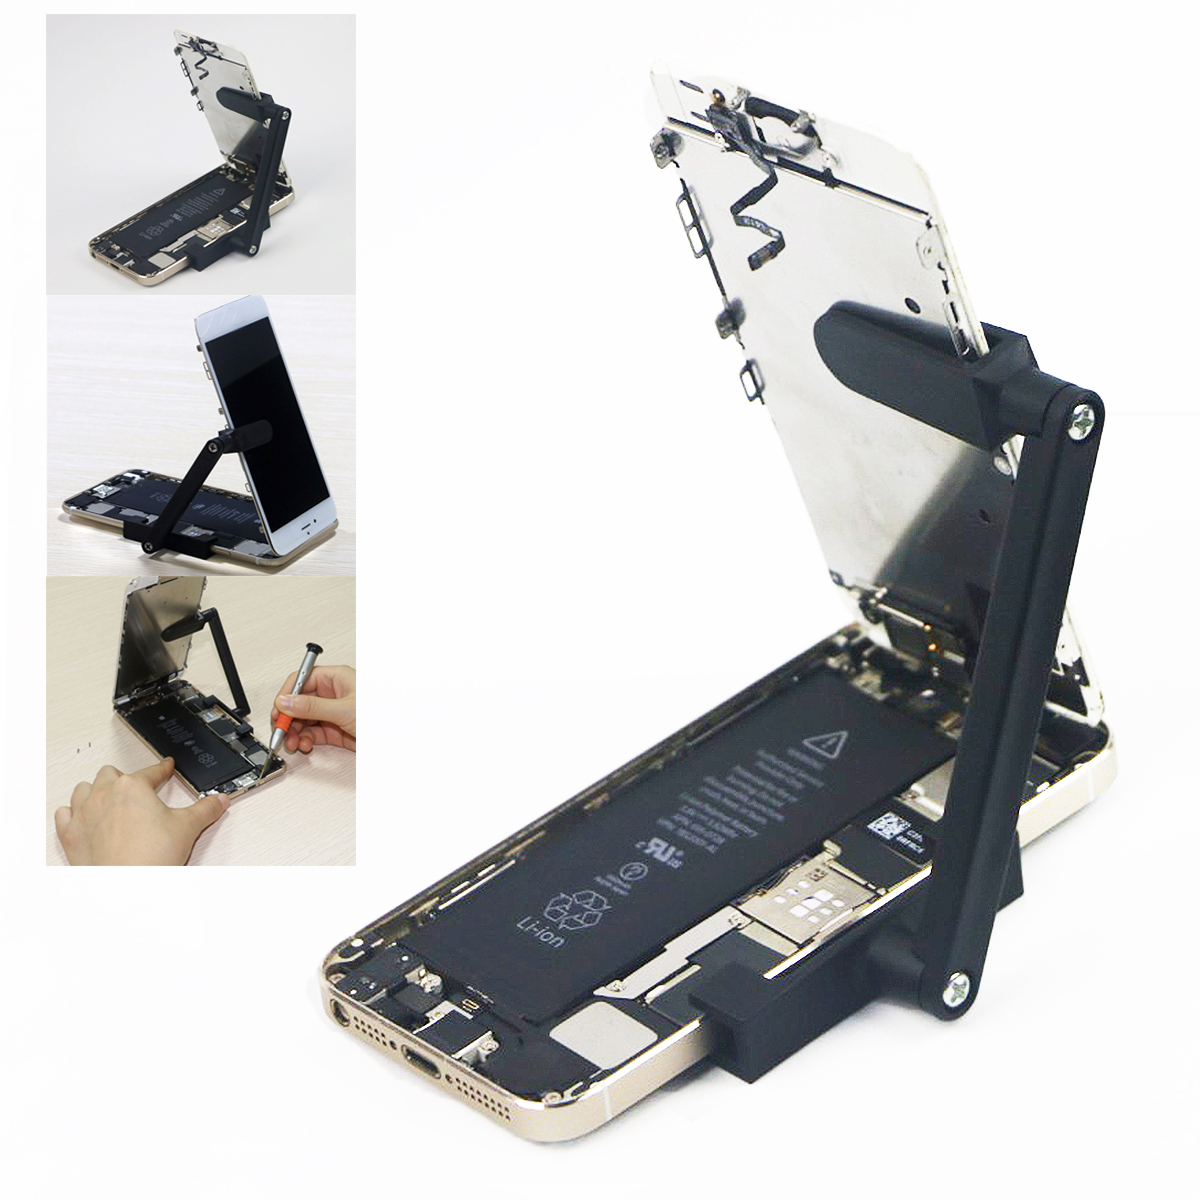 New Doersupp Adjustable LCD Screen Clamp Repair Holder Brasket for iPh one 6 6s Plus 5 5s for iP hone SE Hand Tool Part Flexible